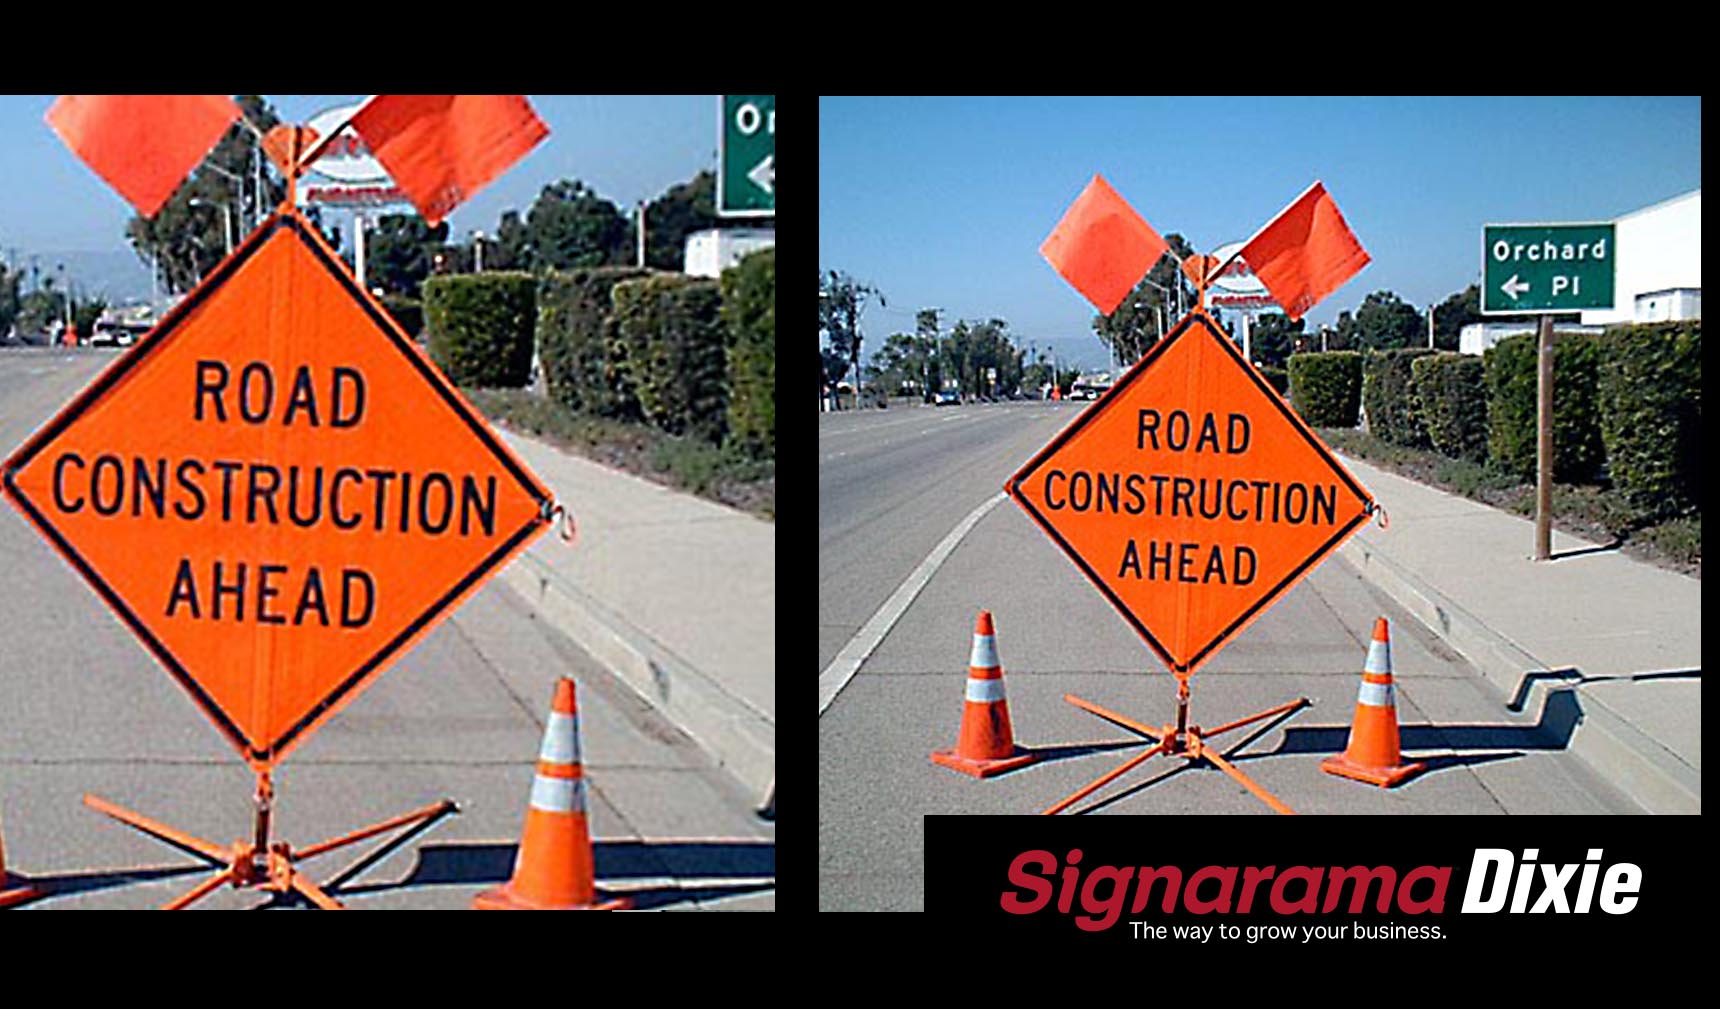 Road Construction Sign Company